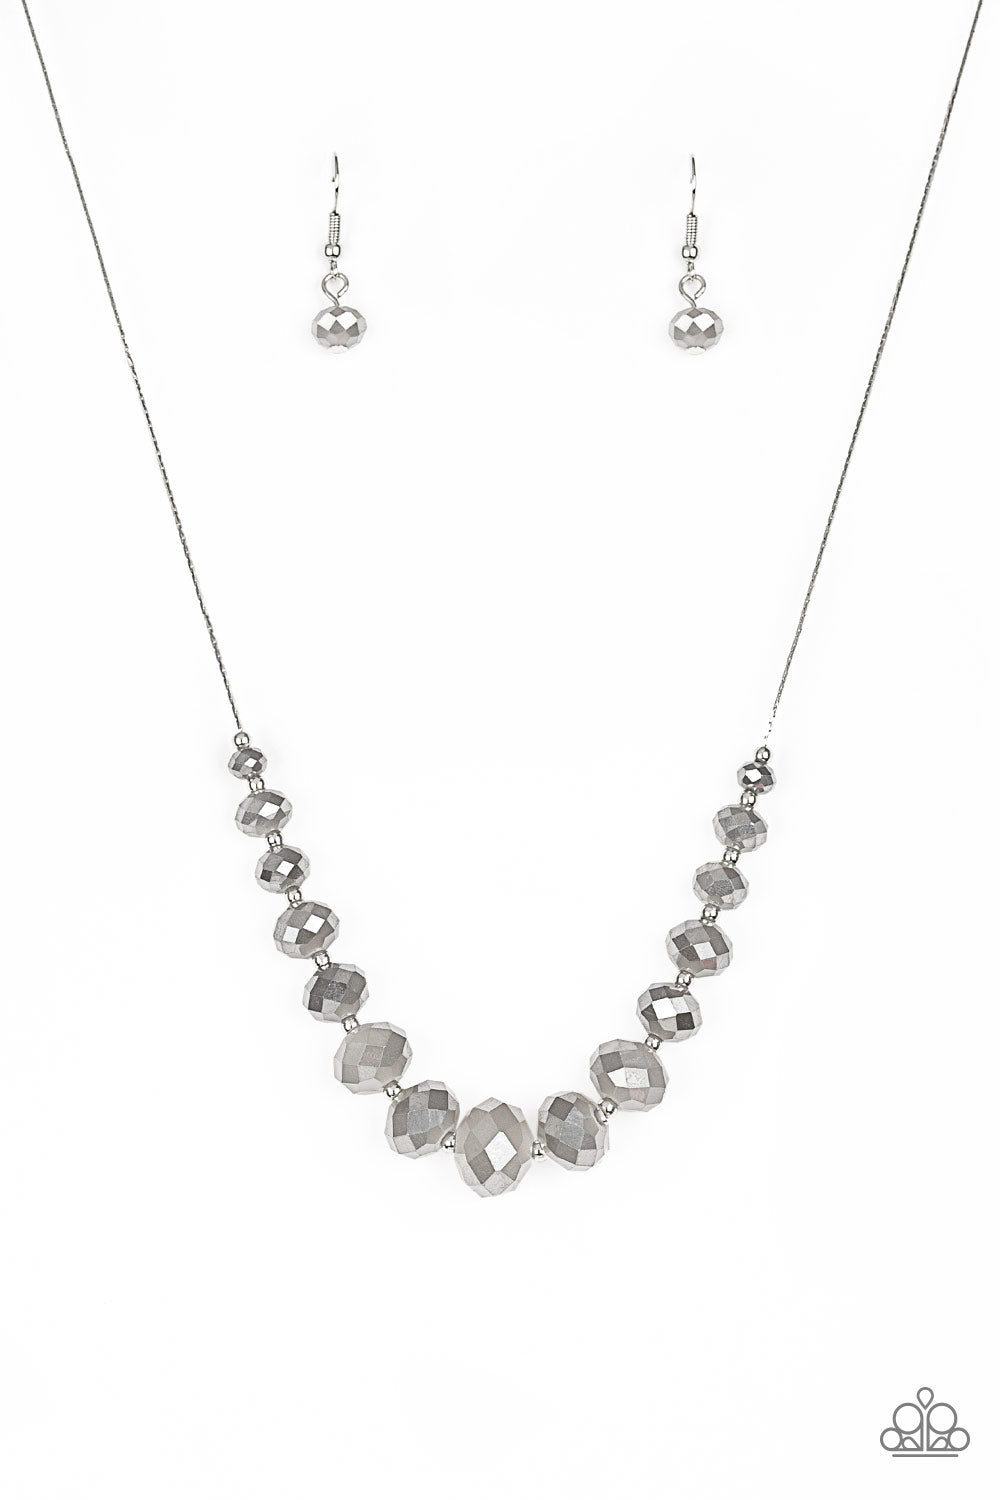 Paparazzi Necklace ~ Crystal Carriages - Silver